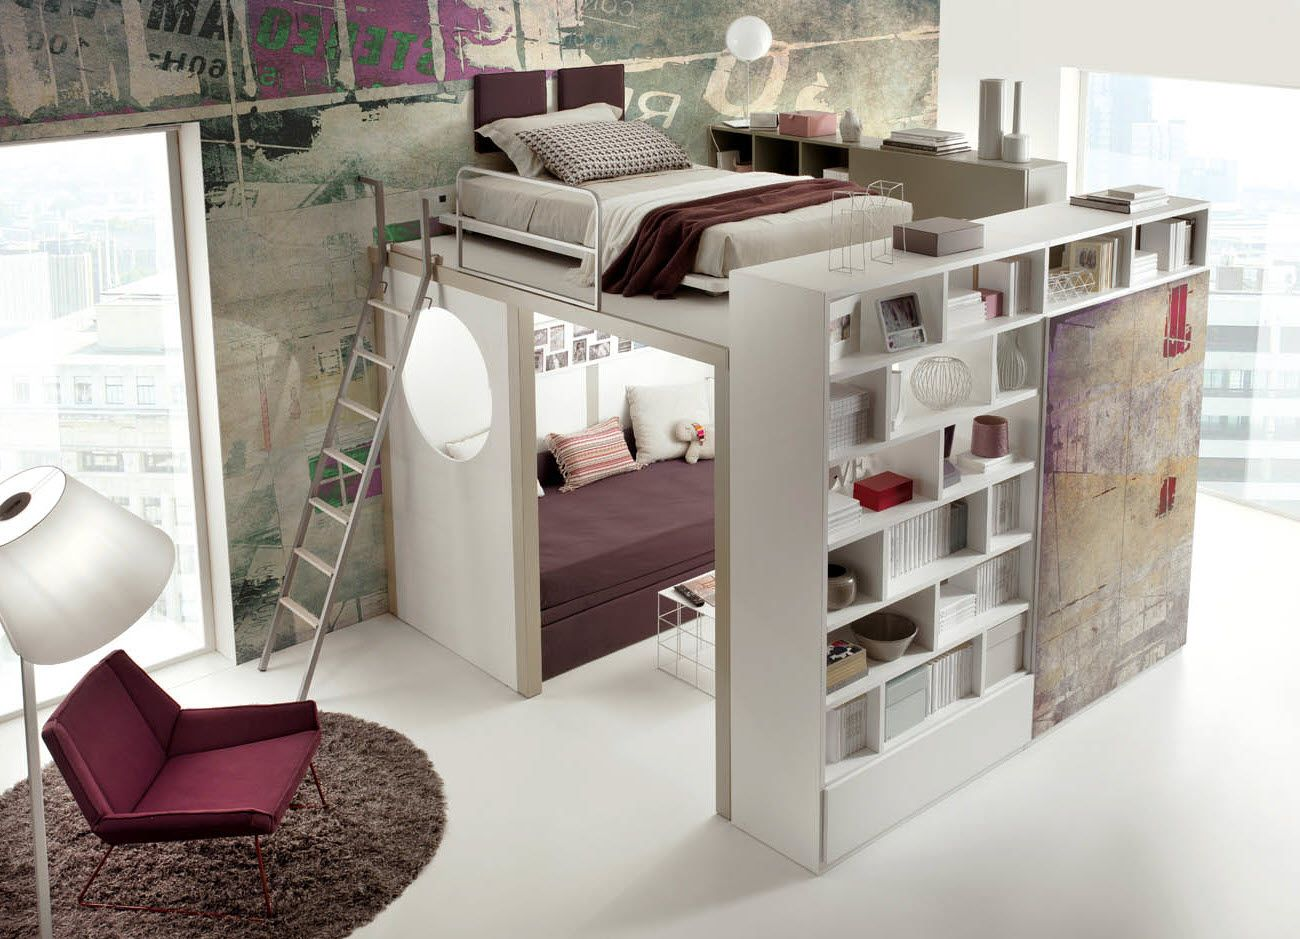 Mezzanine Chambre Lit Mezzanine Ado Art Decor En 2019 Bedroom Kids Bunk Beds